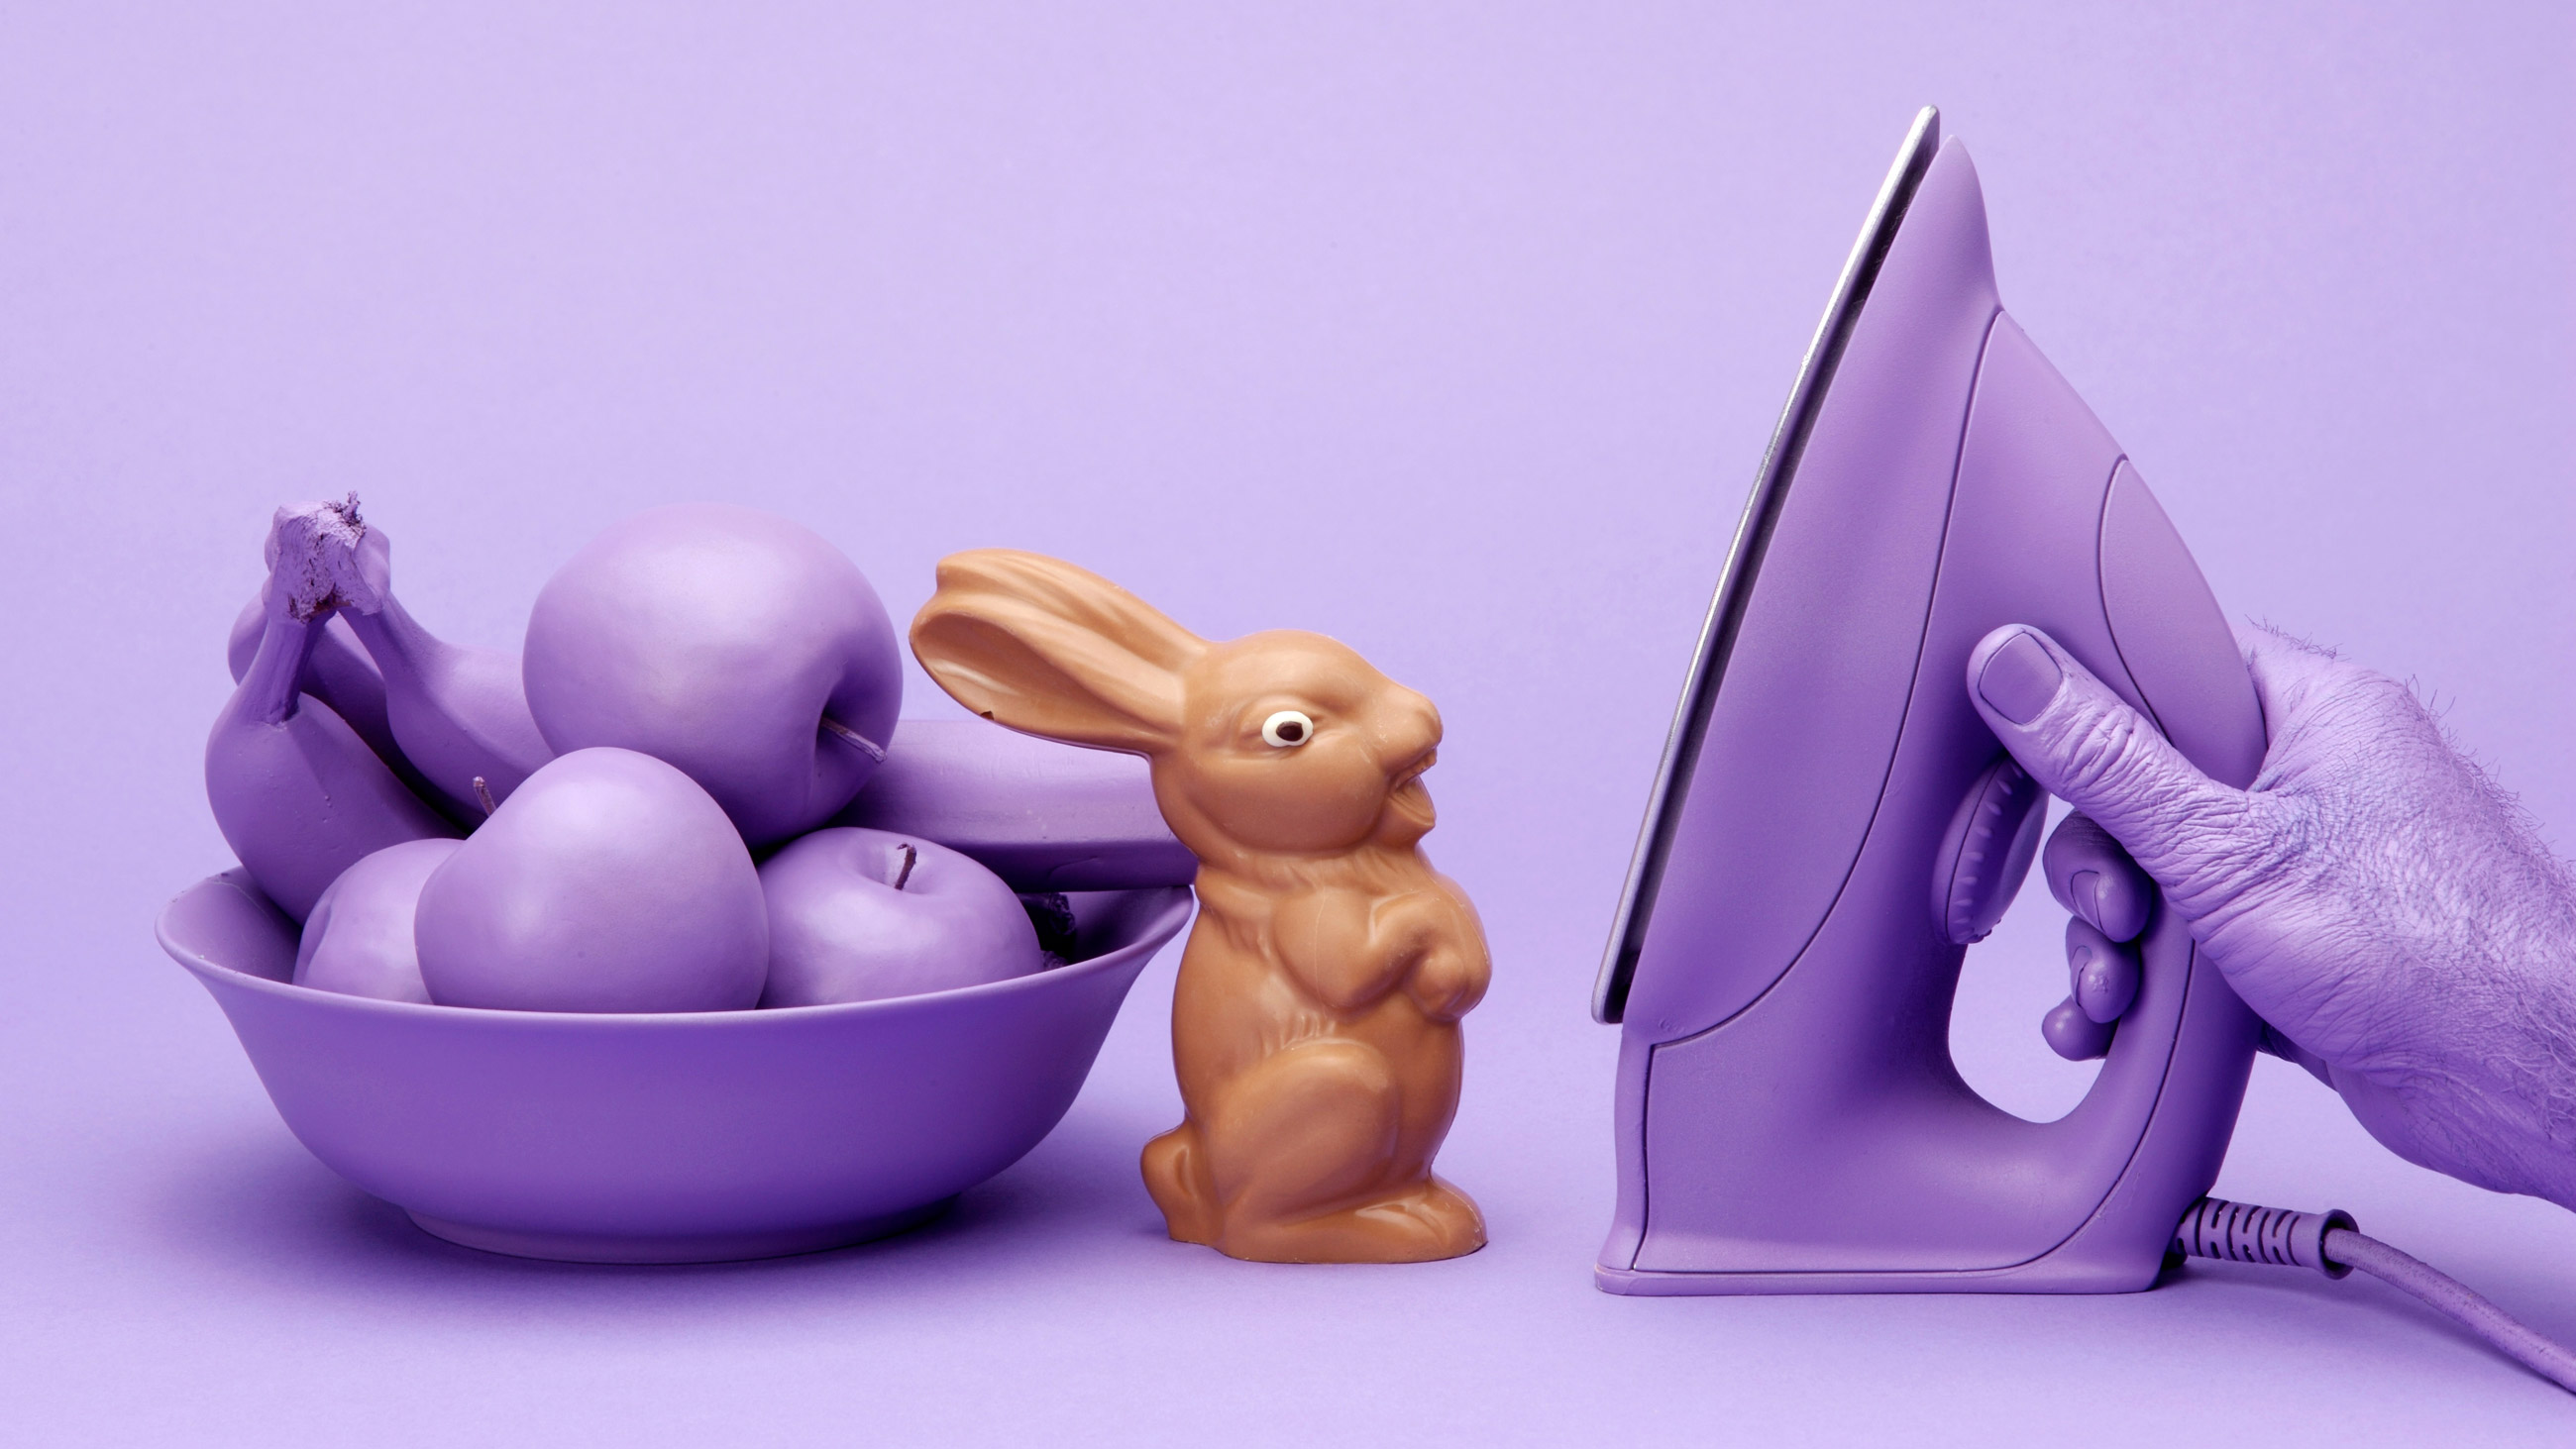 Studio Lernert & Sander — Chocolate Bunny